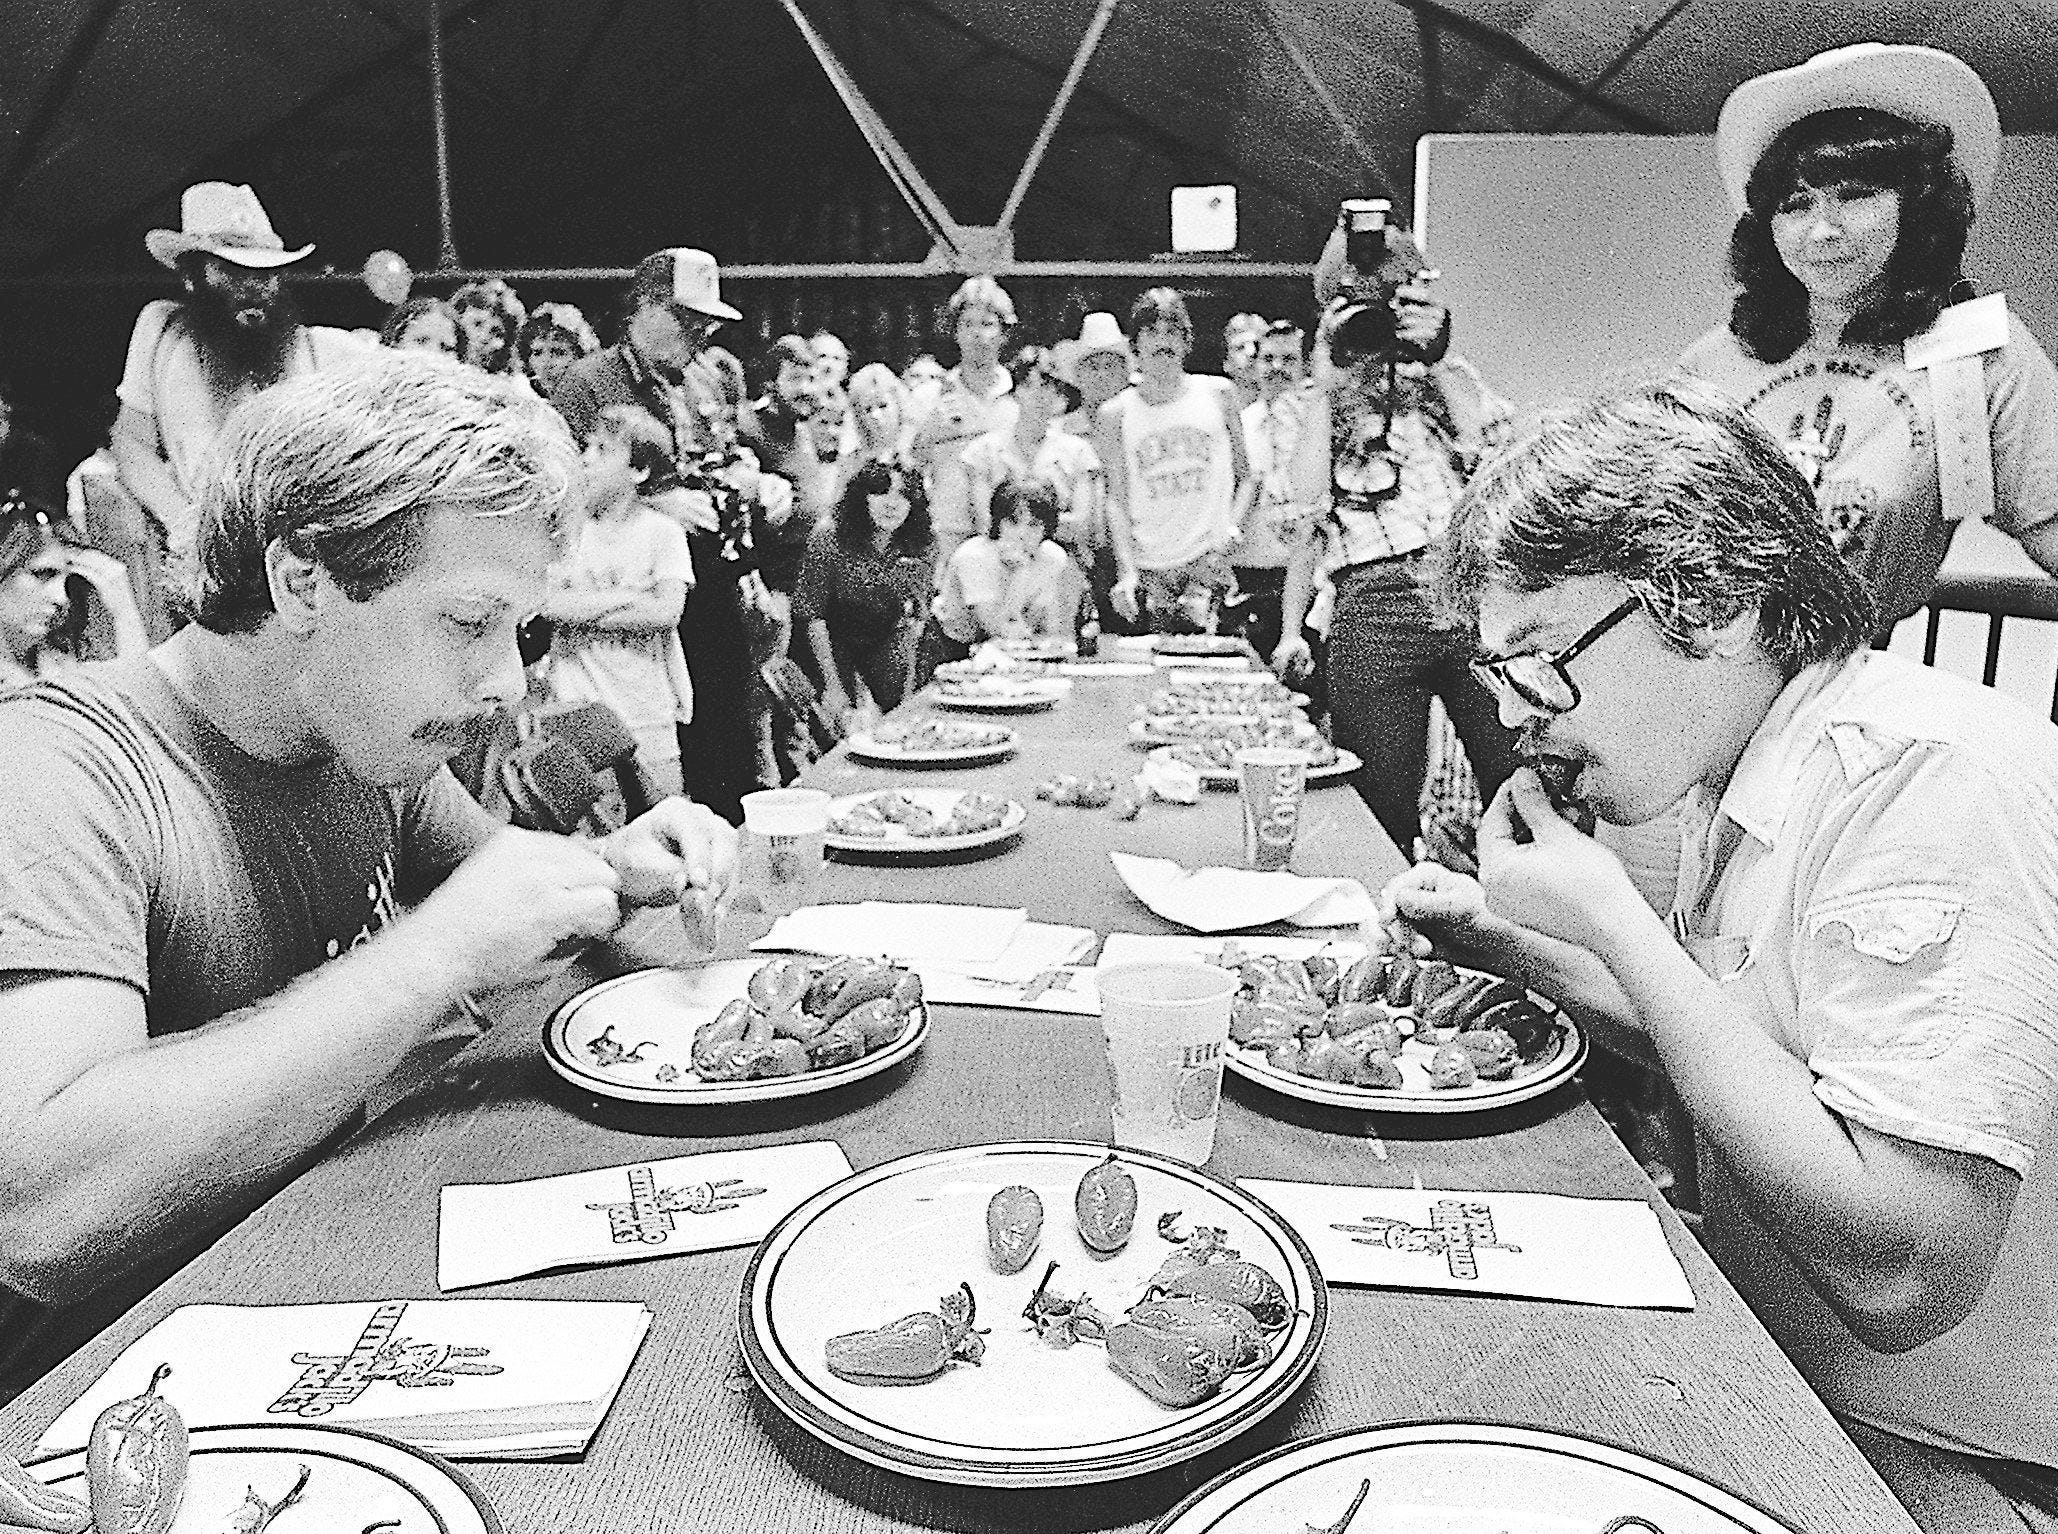 Steve Francomacaro, left, and Jim Inman, who tied for the lead in the Jalapeno Pepper Eating Contest at Beale Street Landing by downing 25 peppers in one minute, square off in a 15-second tiebreaker. Francomacaro snatched the victory on 7 July 1984 in tallying more than 30 peppers in the complete 75 seconds.